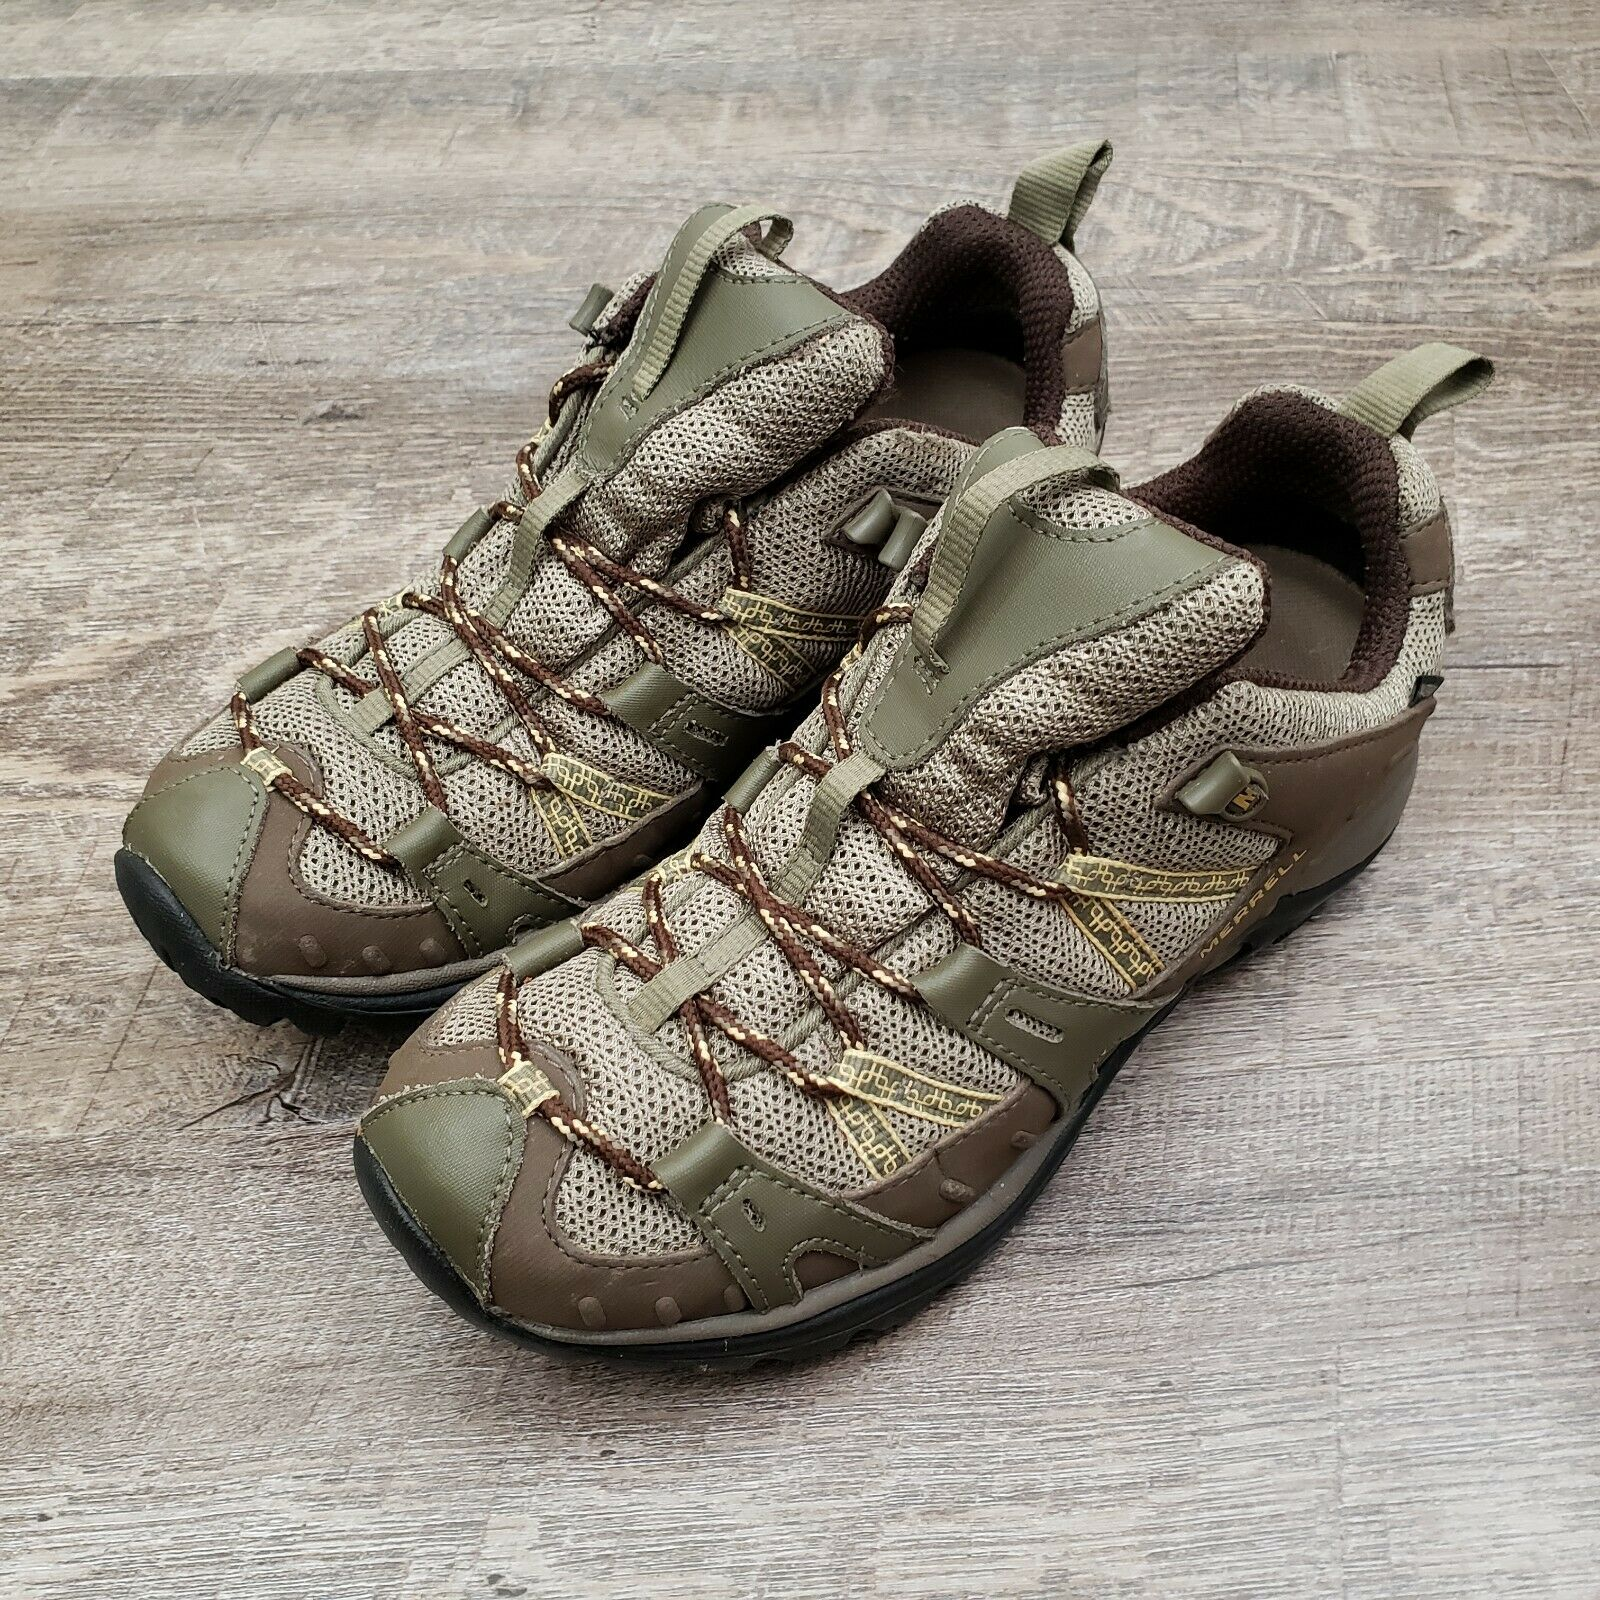 Merrell Siren  2 Brindle Women's Trail shoes Size 9 Hiking Waterproof Brown Olive  with 60% off discount